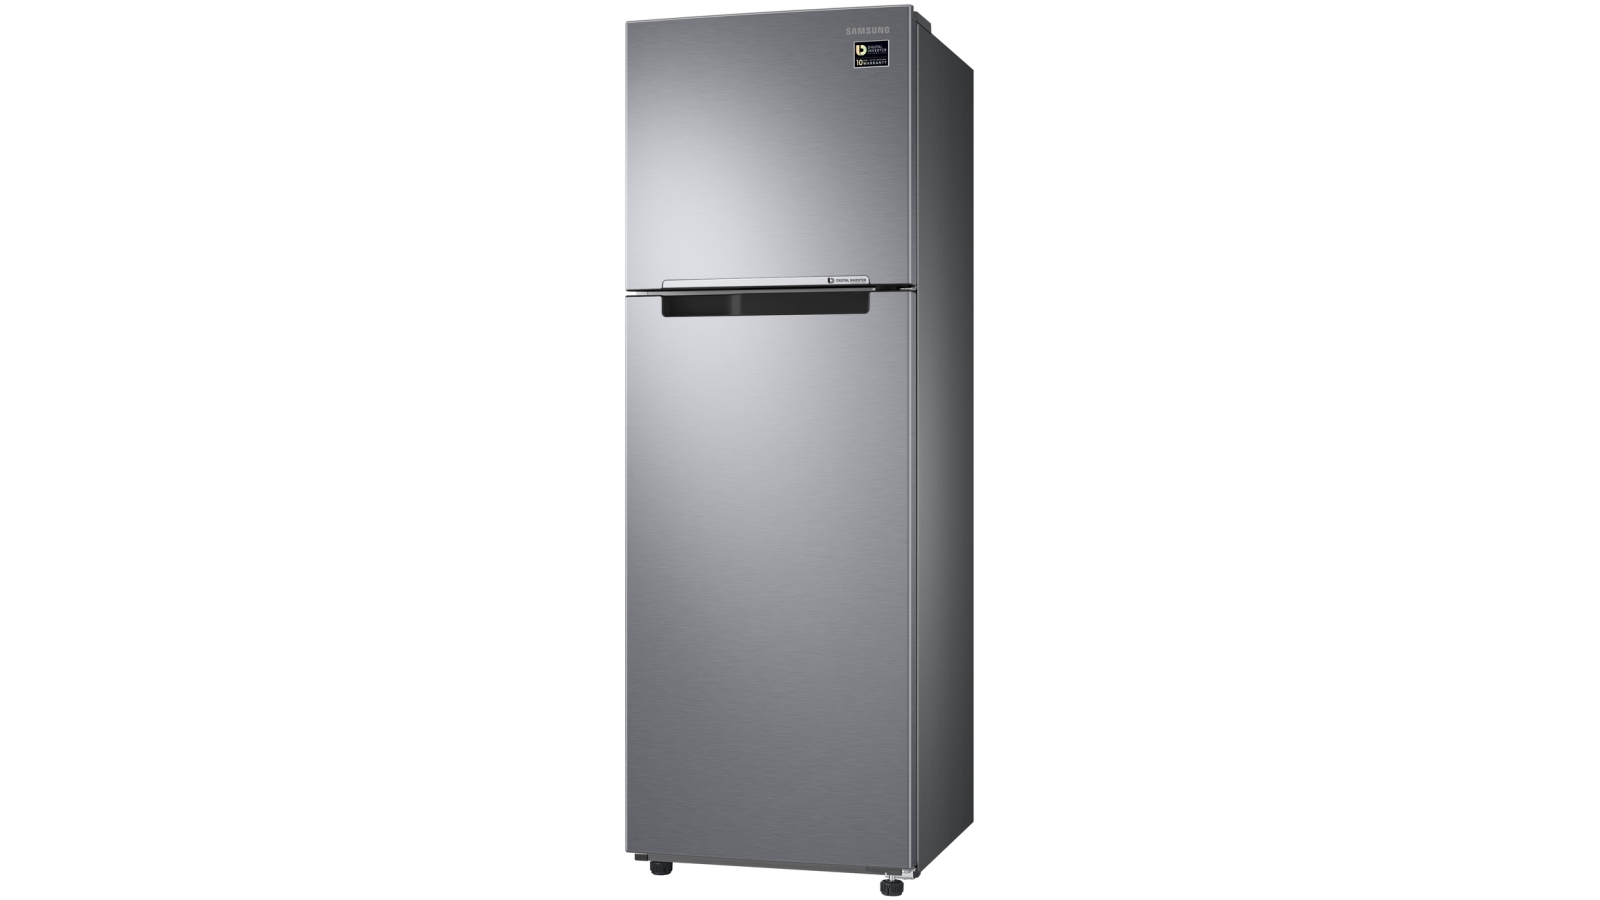 Samsung 270L Top Mount Fridge - Stainless Steel